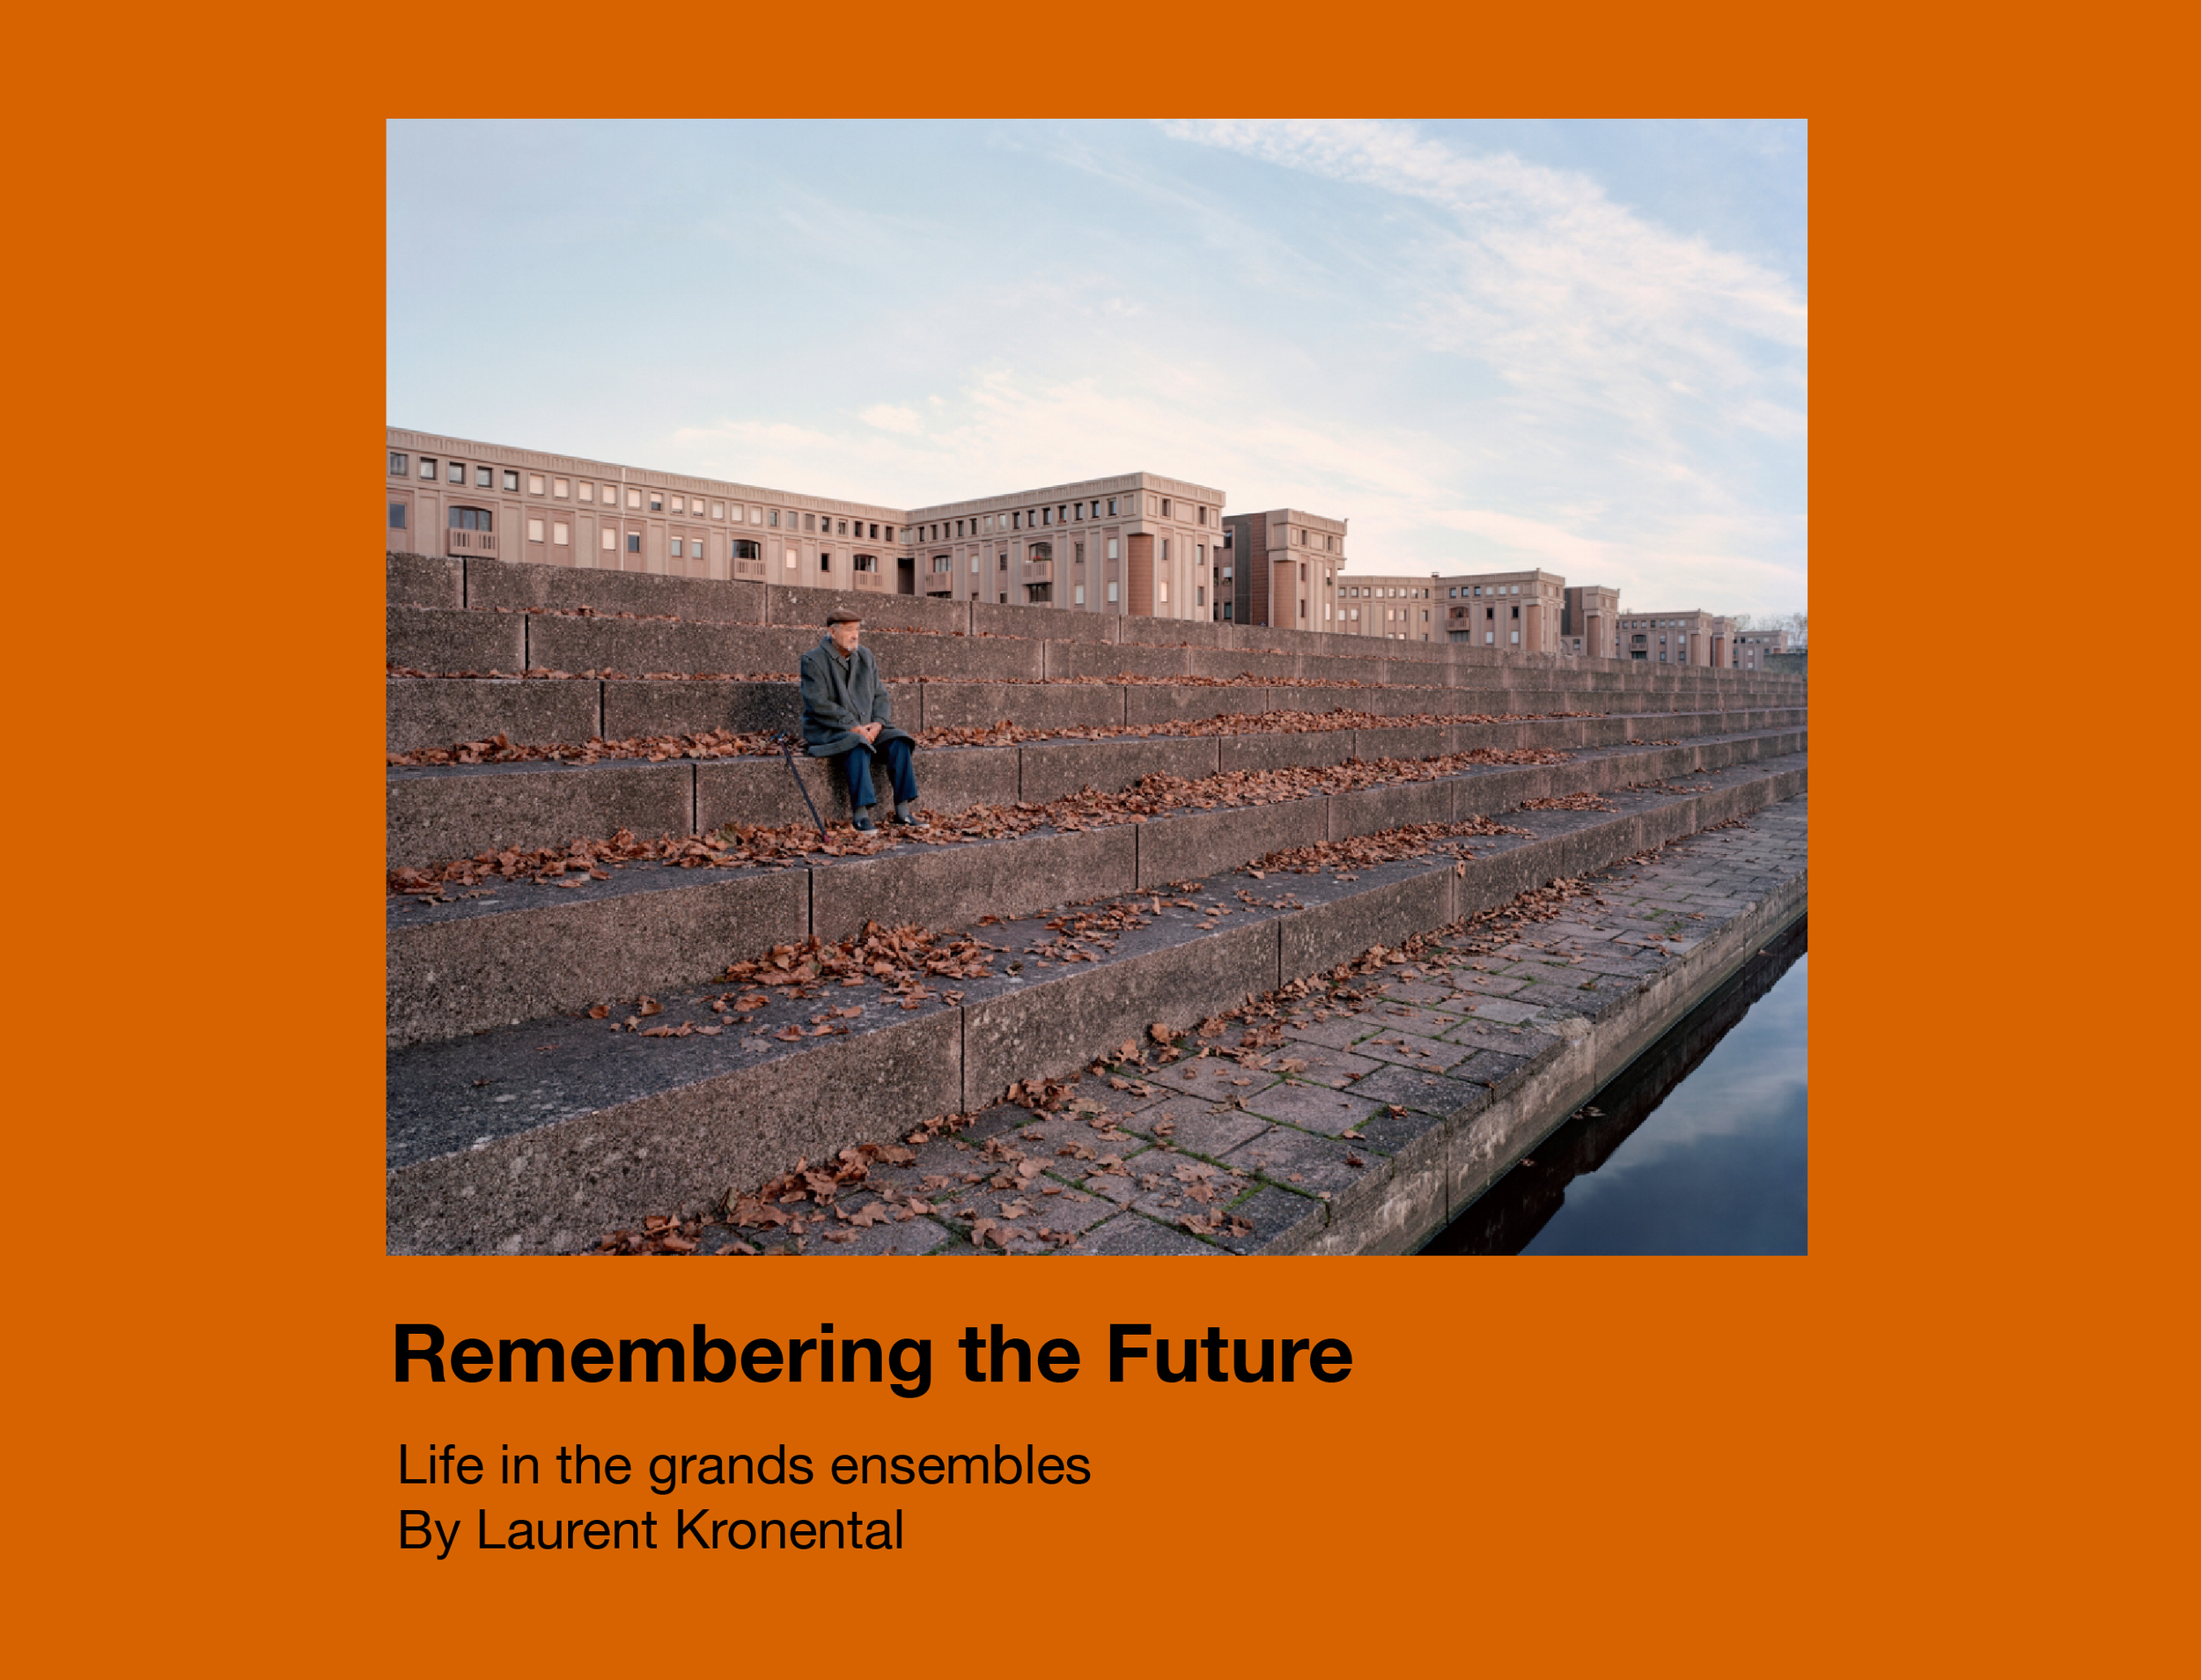 Remembering the Future